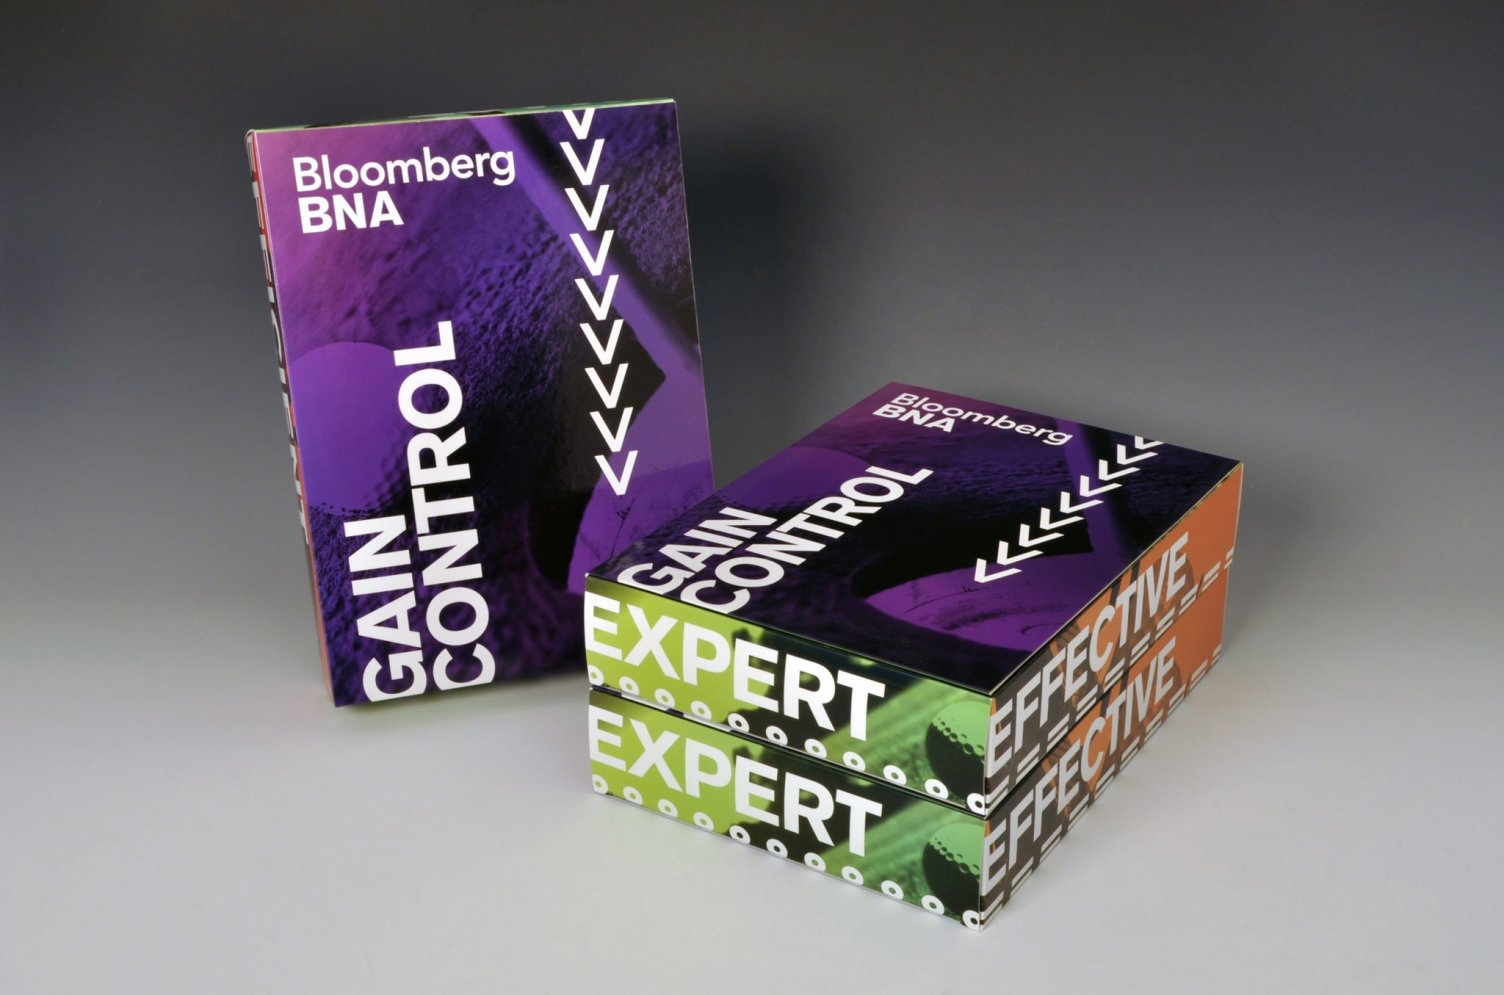 Bloomberg BNA Boxes